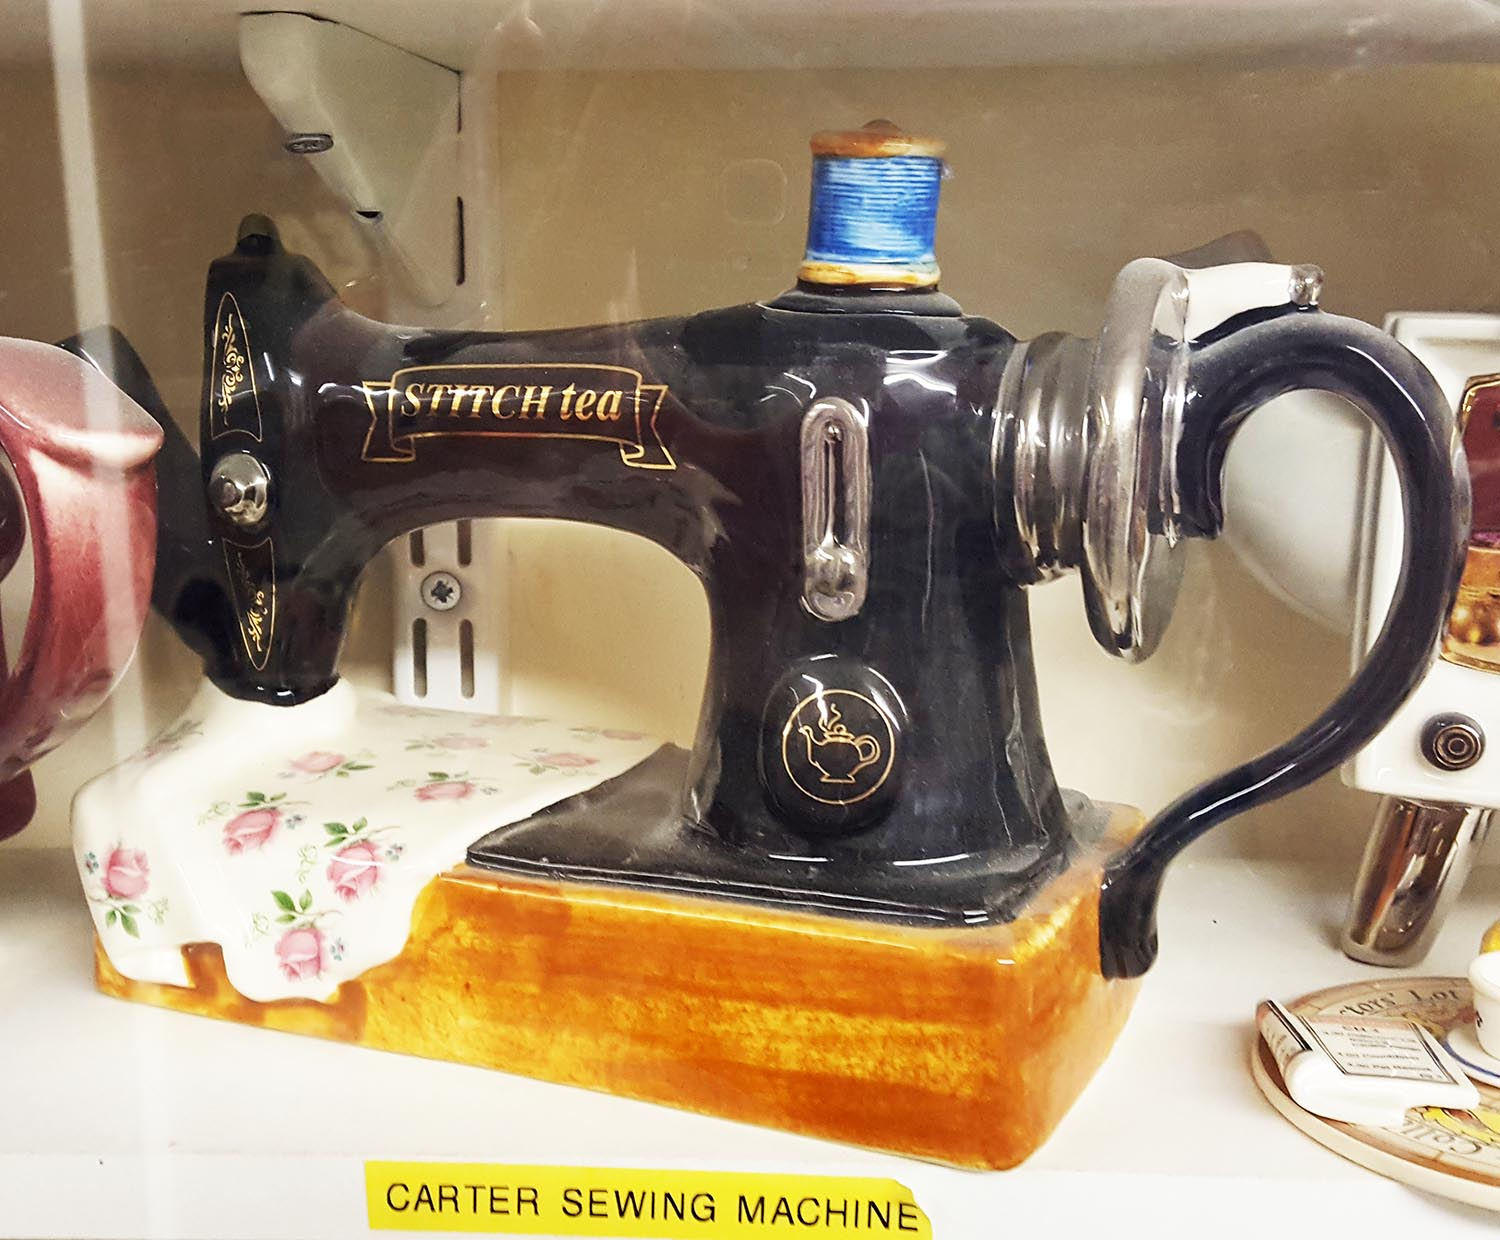 Sewing Machine Teapot, Teapot Island.jpg